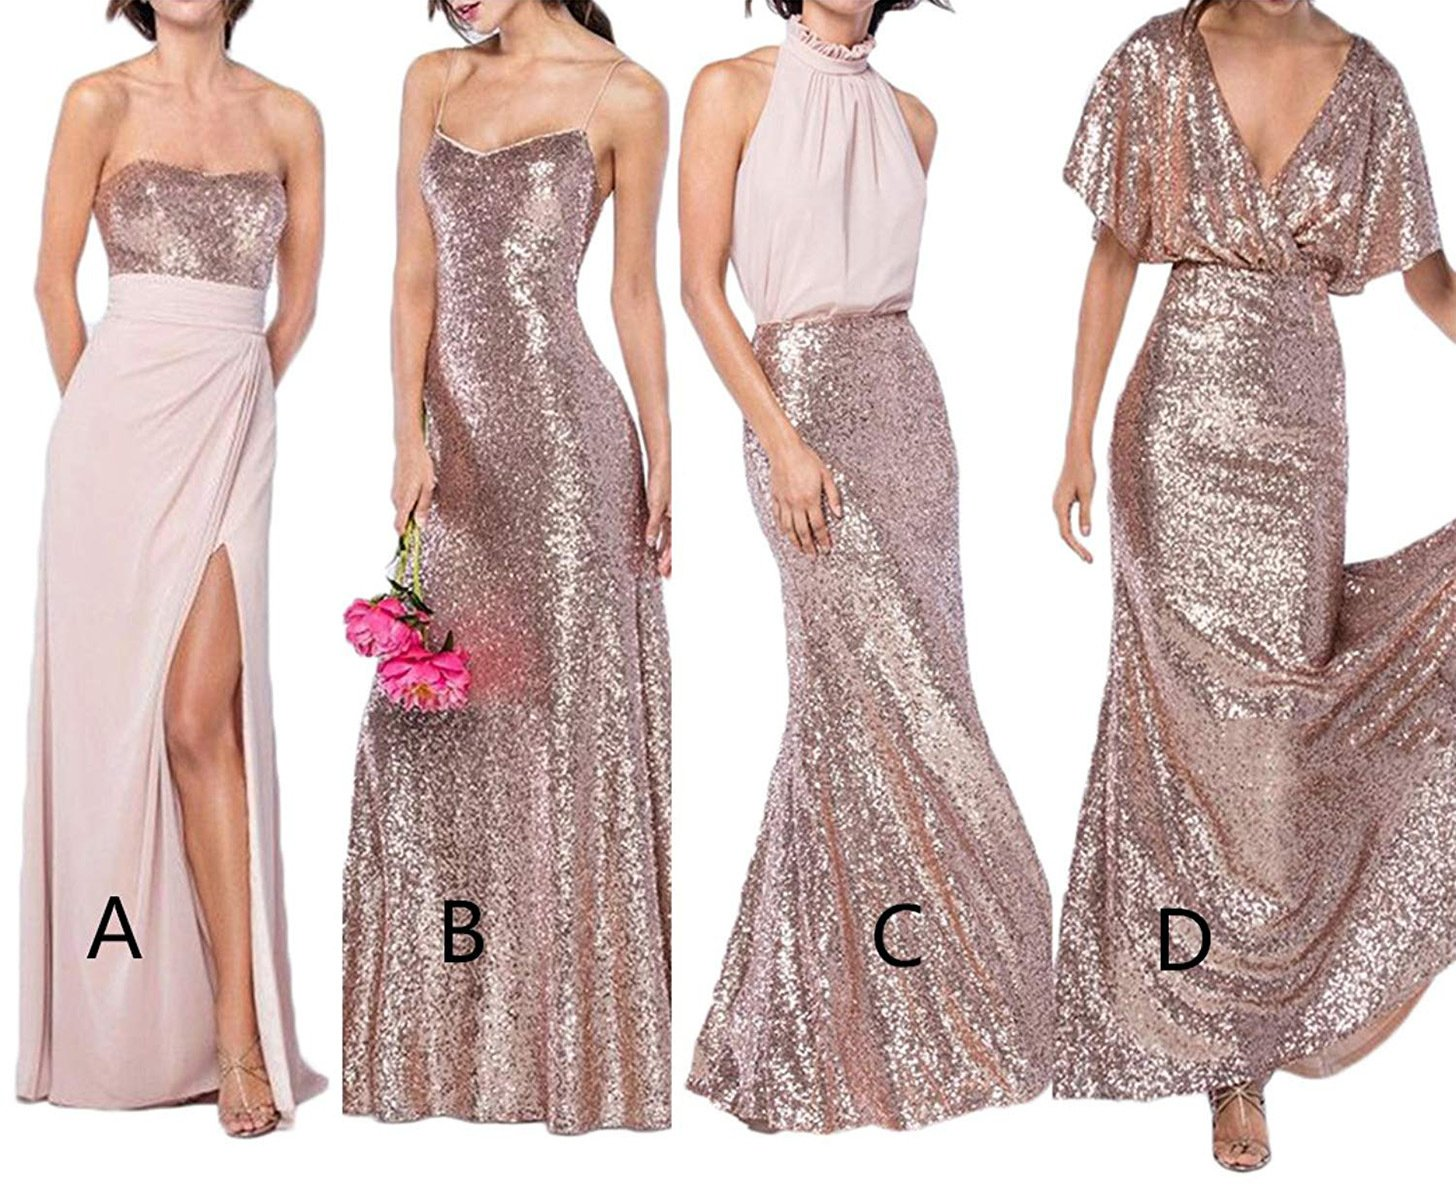 5cd79ca7a2a6 Sequin Bridesmaid Dresses Long Spaghetti Strap Mermaid Prom Evening Gown  2019 Rose Gold 12